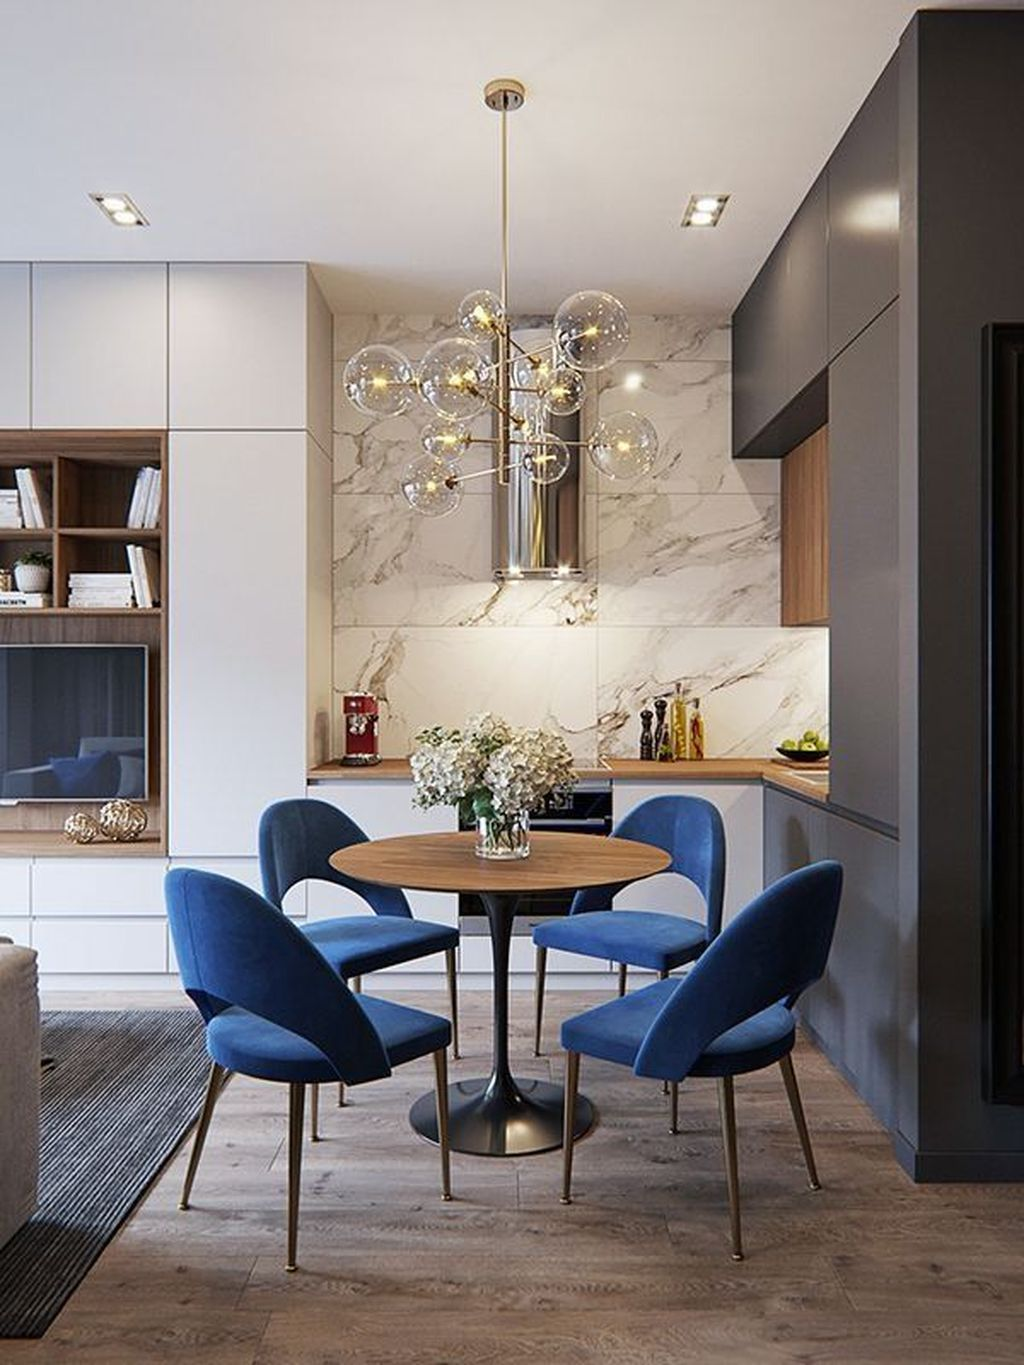 open kitchen, wooden floor, grey cabinet, white marble wall, white cabinet, grey rug, wooden round table, blue chairs, glass chandelier